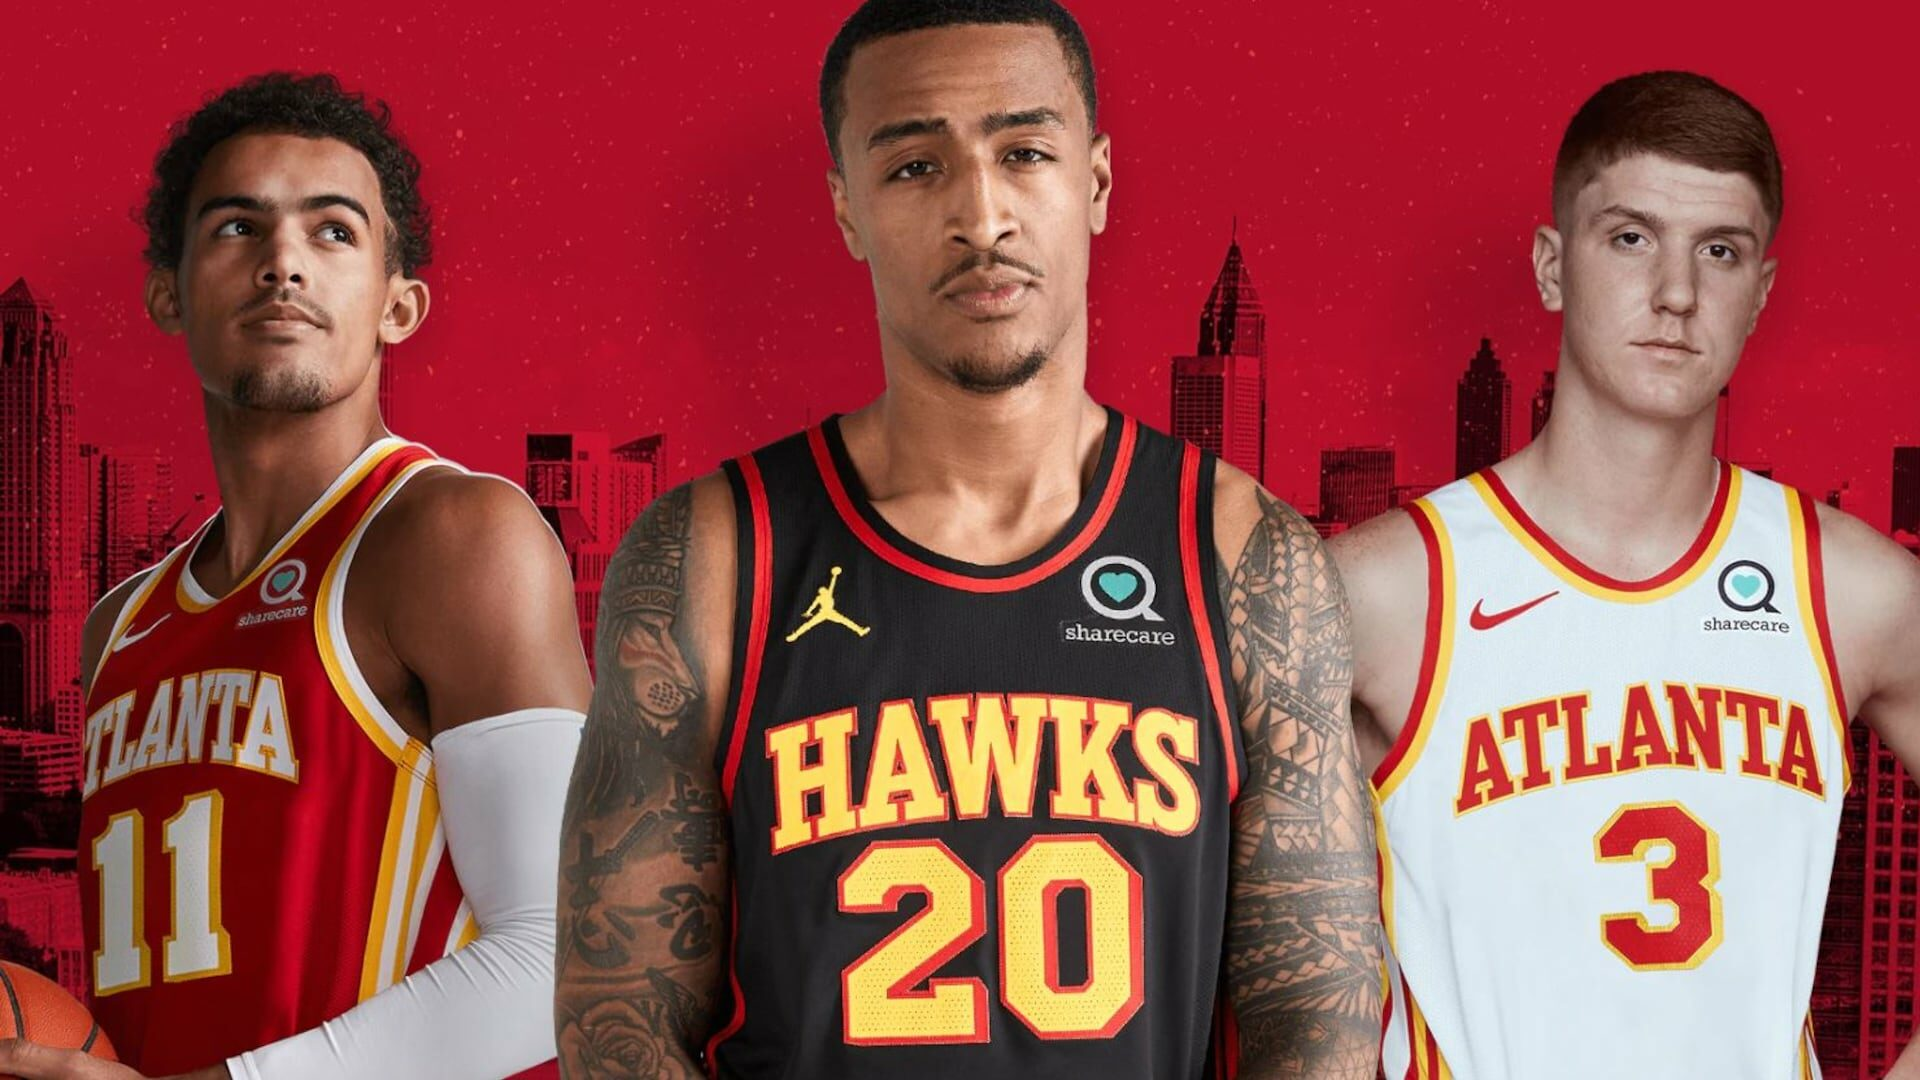 Hawks look to past with new uniform set